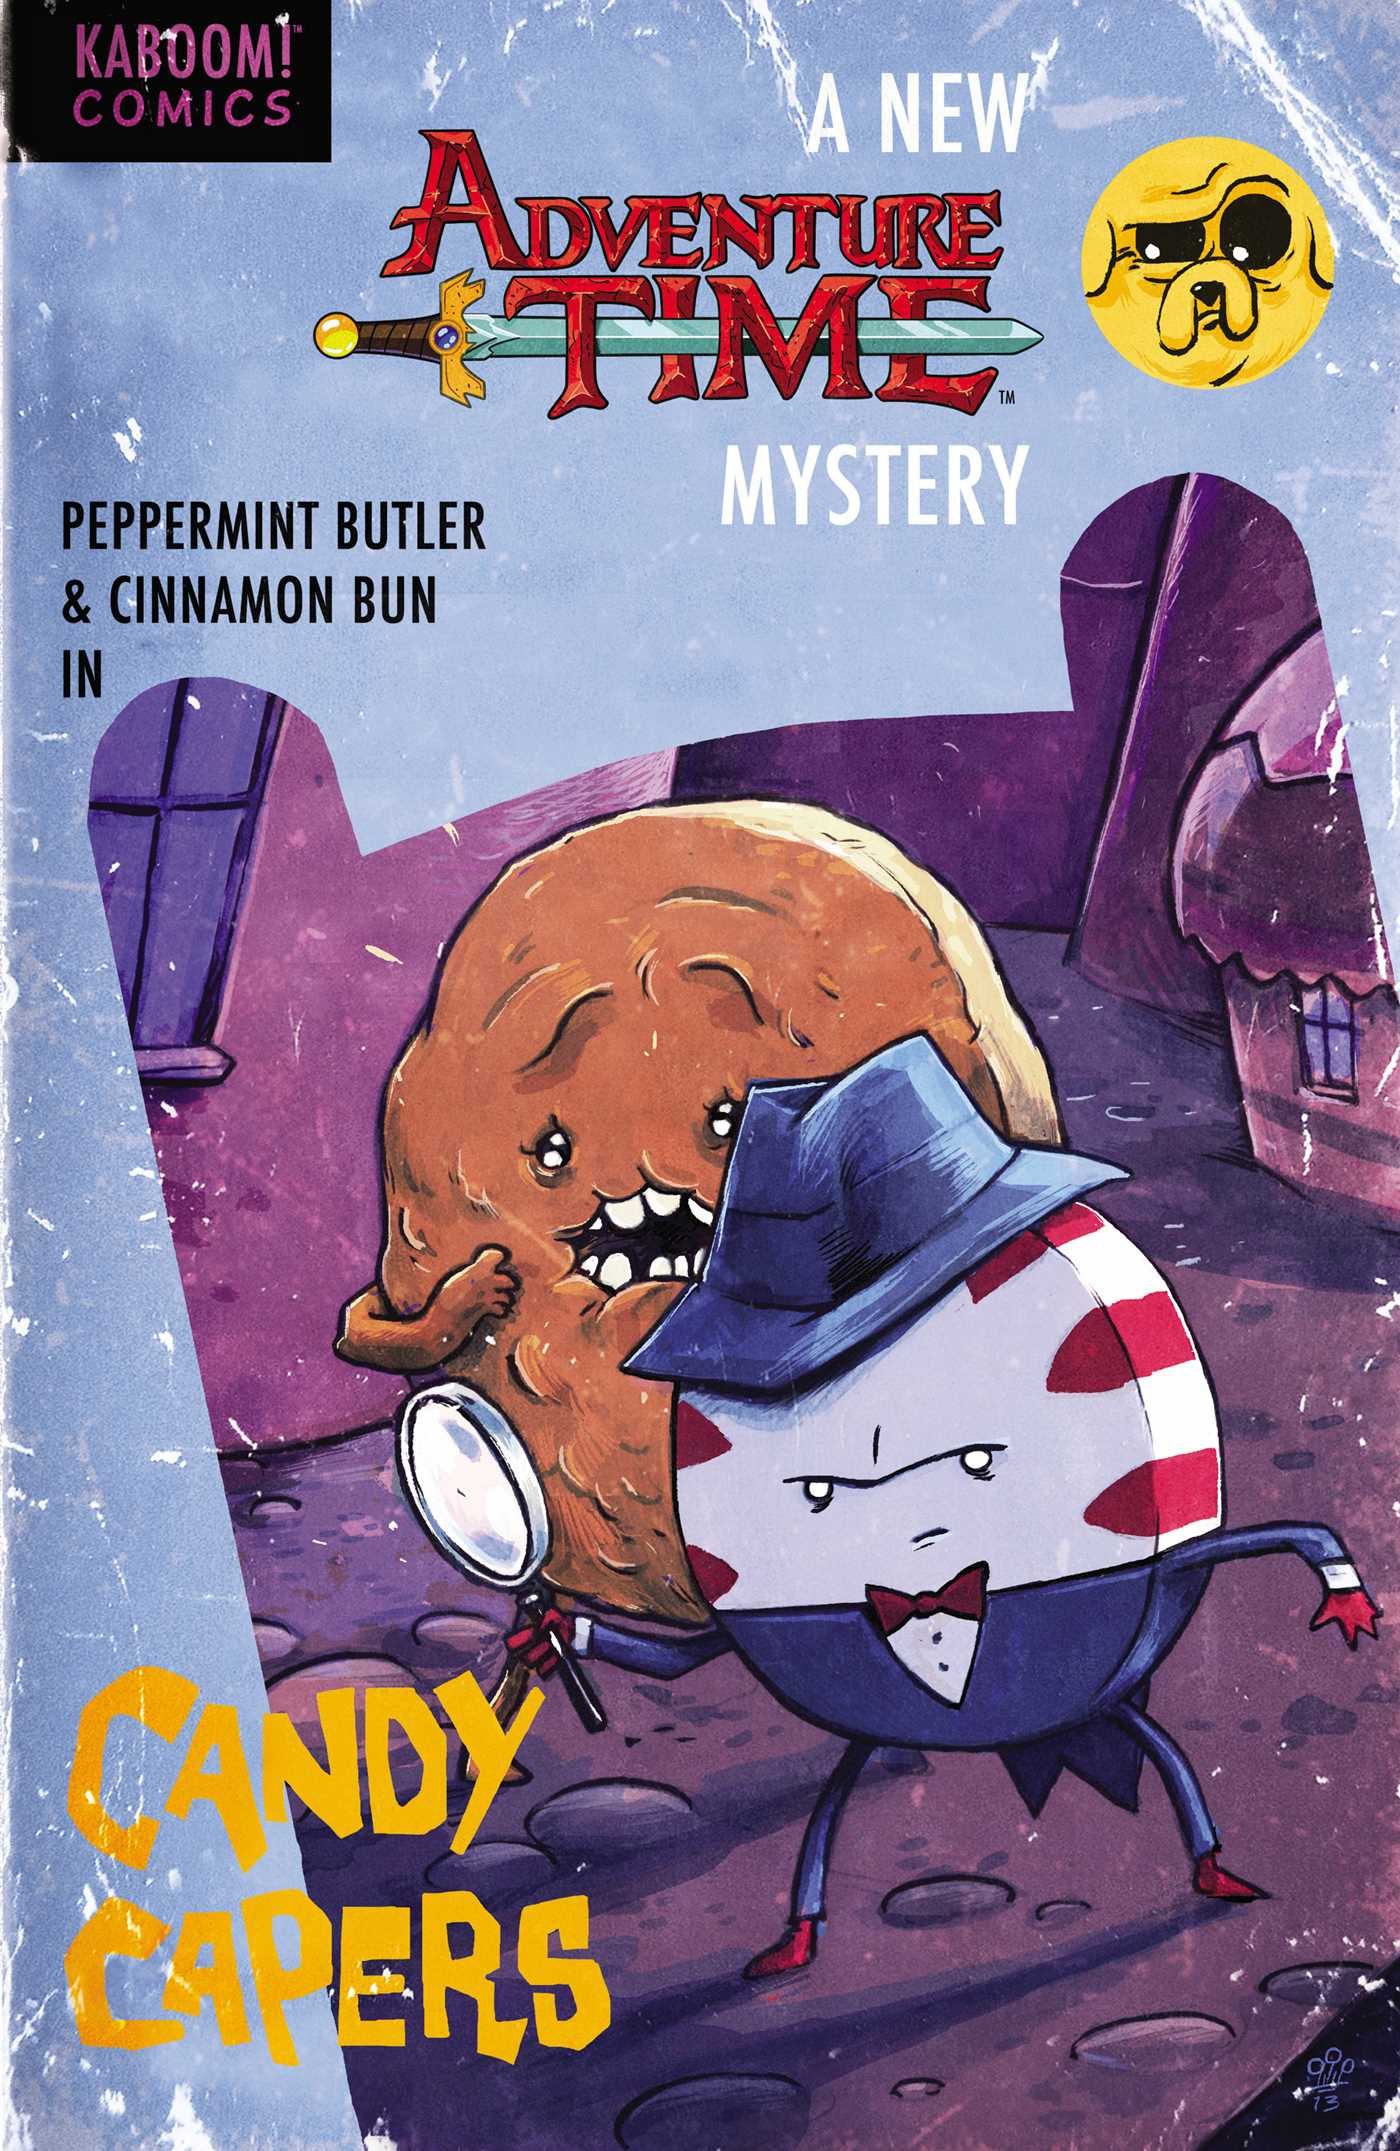 Adventure-time-candy-capers-9781608863655_hr